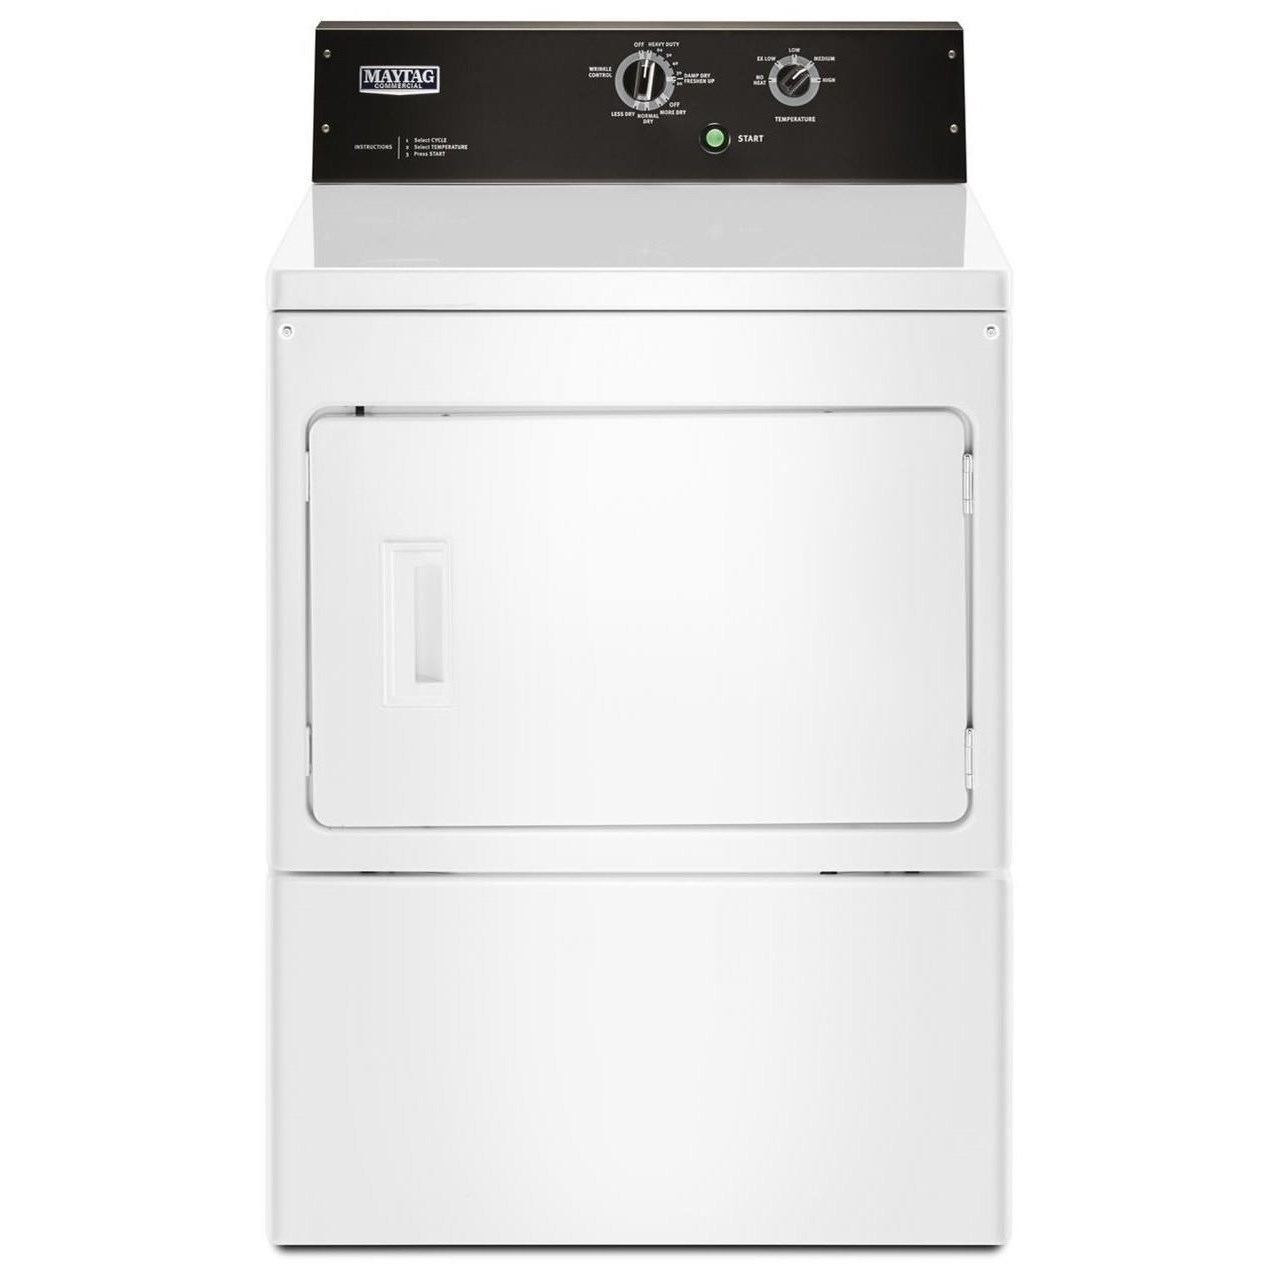 Front Load Gas Dryer 7.4 cu. ft. Commercial-Grade Dryer by Maytag at Furniture and ApplianceMart